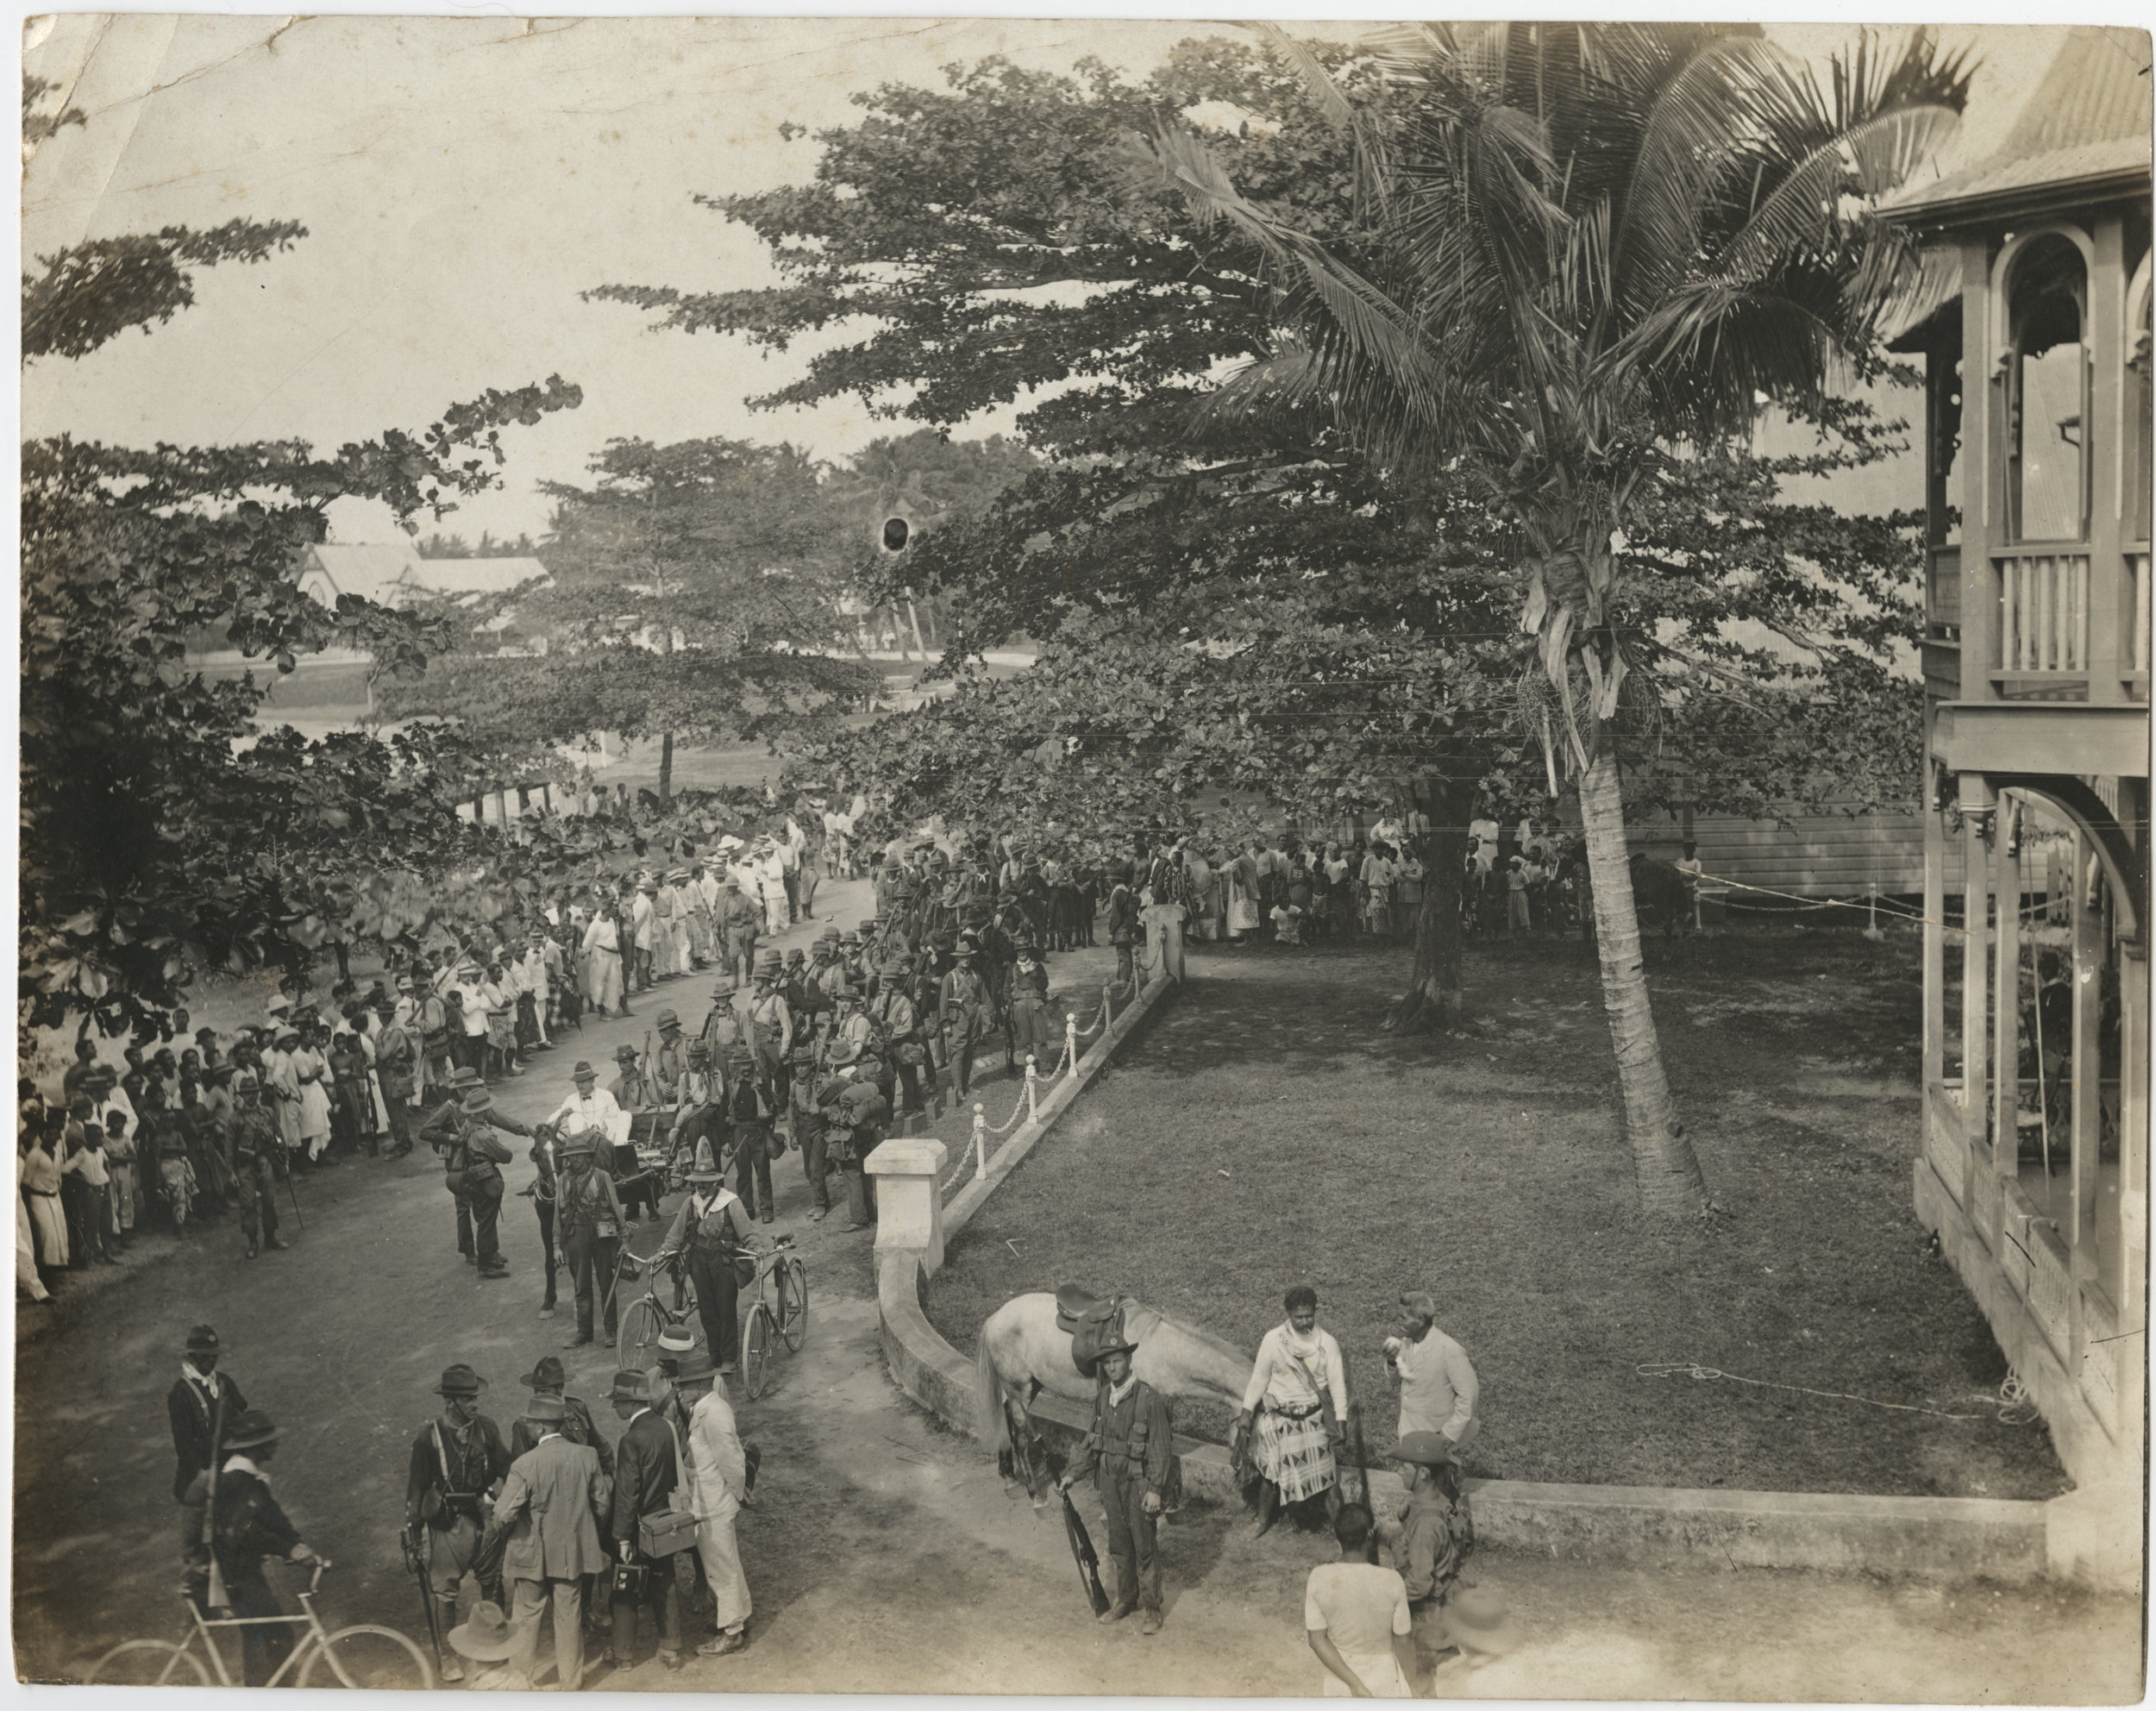 Soldiers marching through the streets